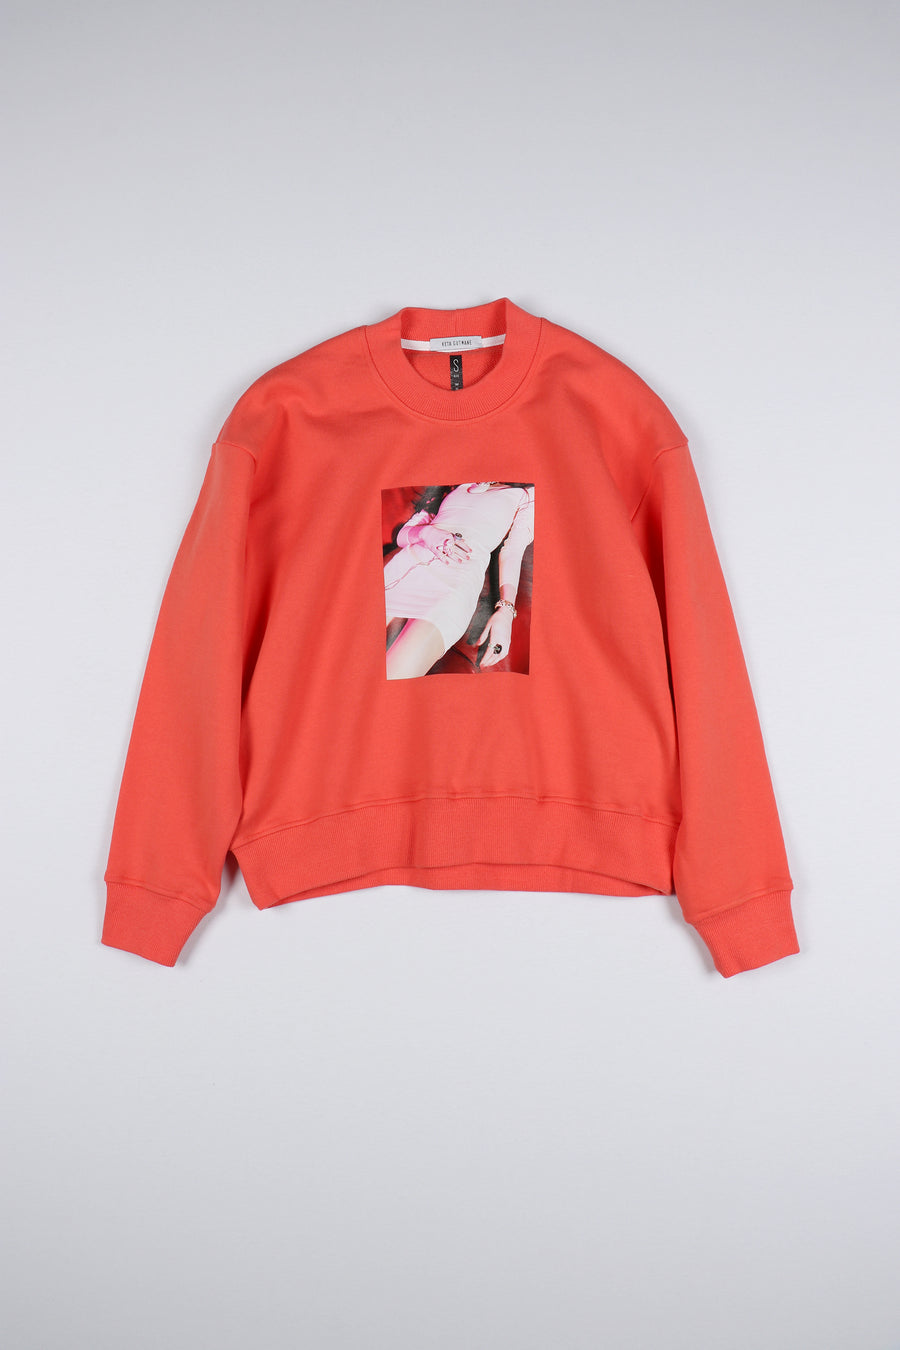 PINK/ORANGE PHOTO STORY SWEATSHIRT